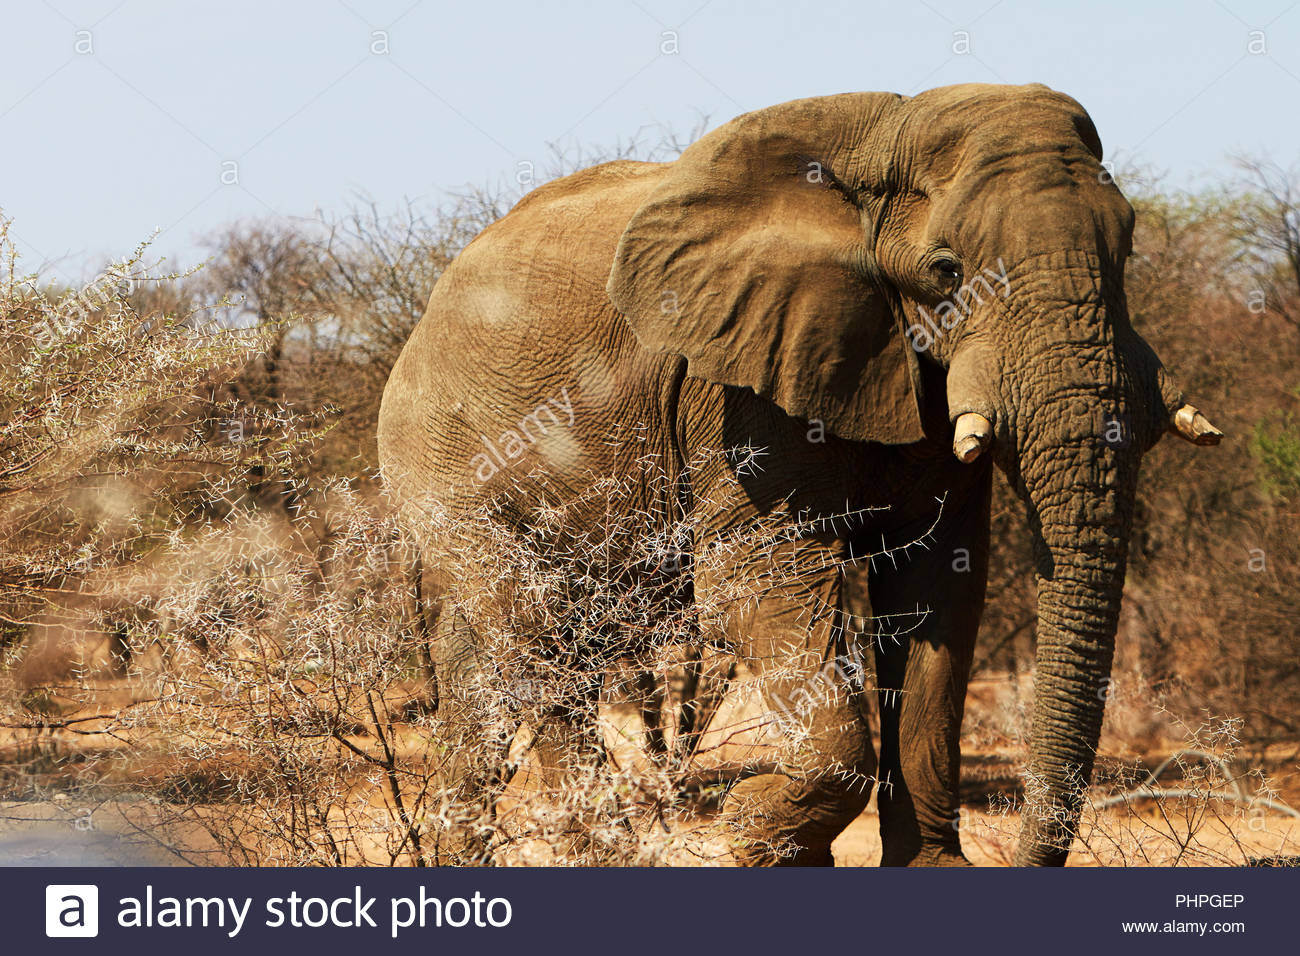 African elephant walking by trees - Stock Image